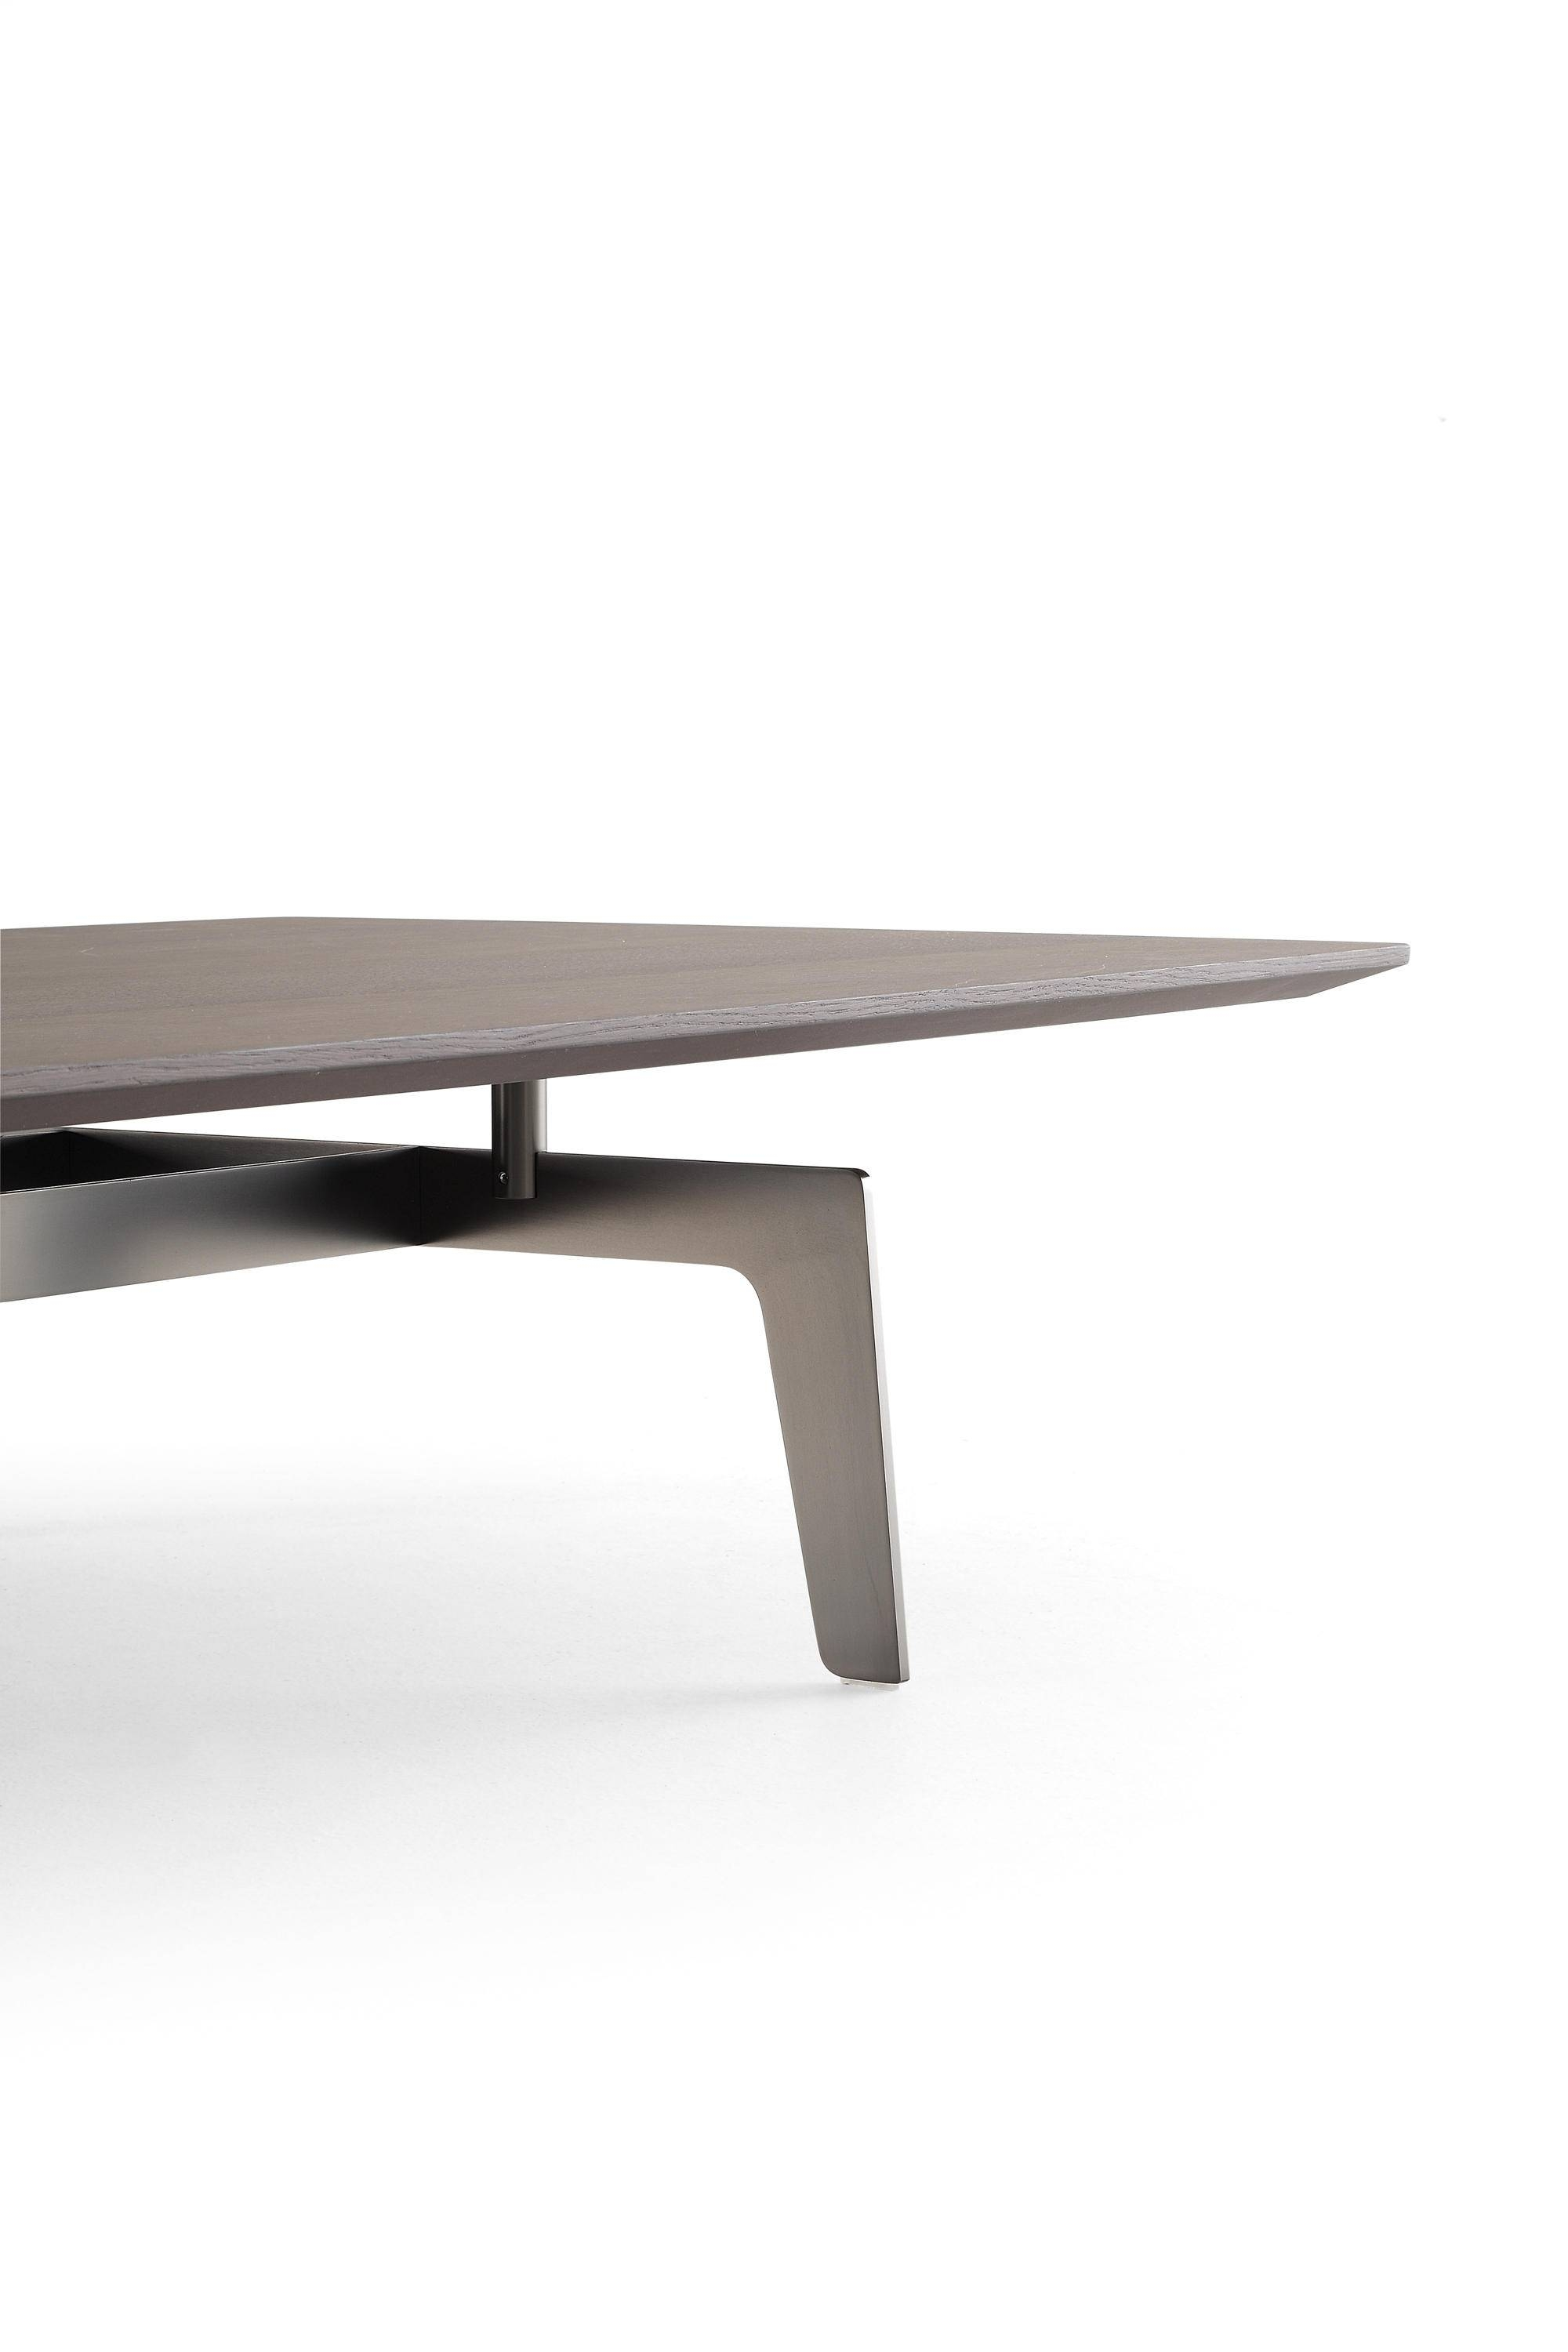 Tribeca Coffee Table - Coffee Tables From Poliform | Architonic pertaining to Tribeca Coffee Tables (Image 22 of 30)